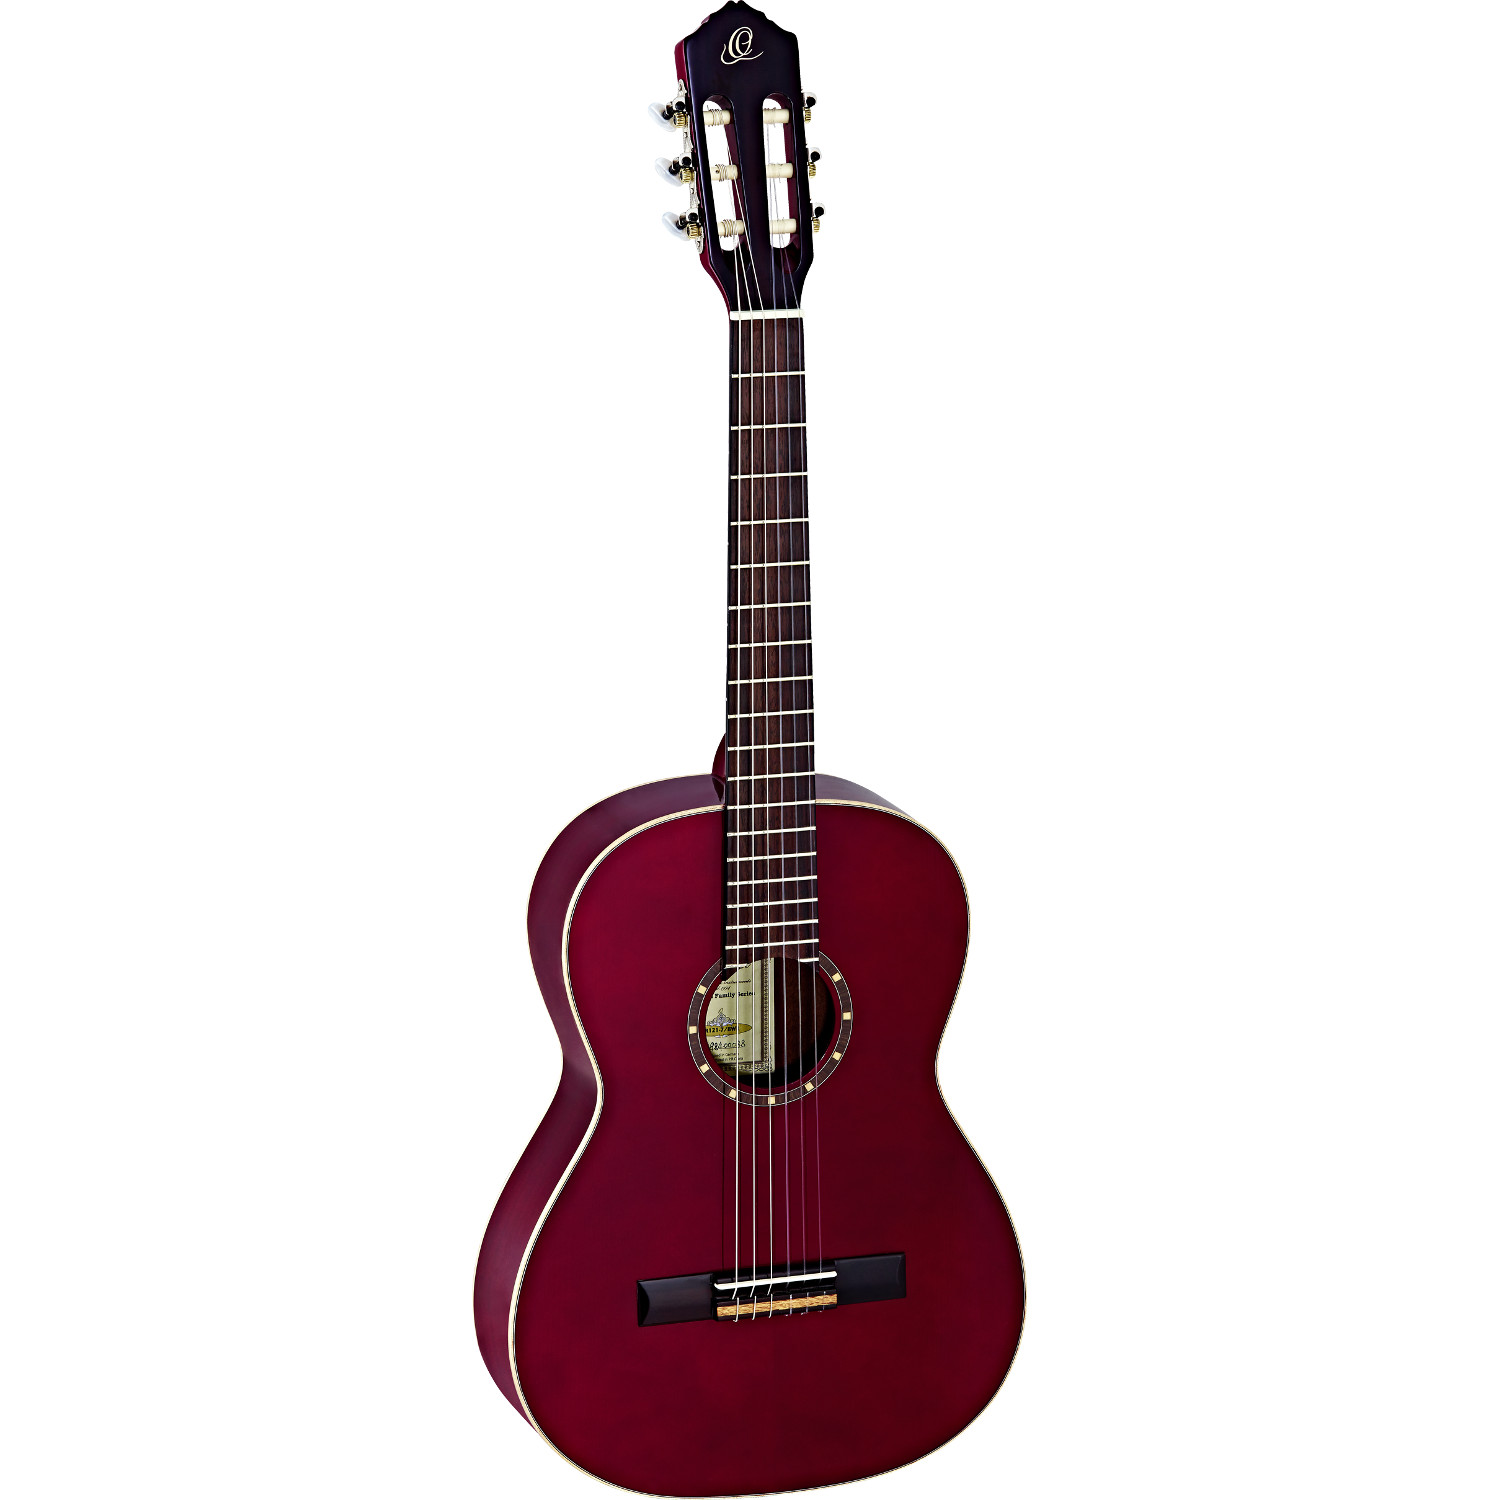 Ortega Family Series R121 7 8 wine red with gig bag